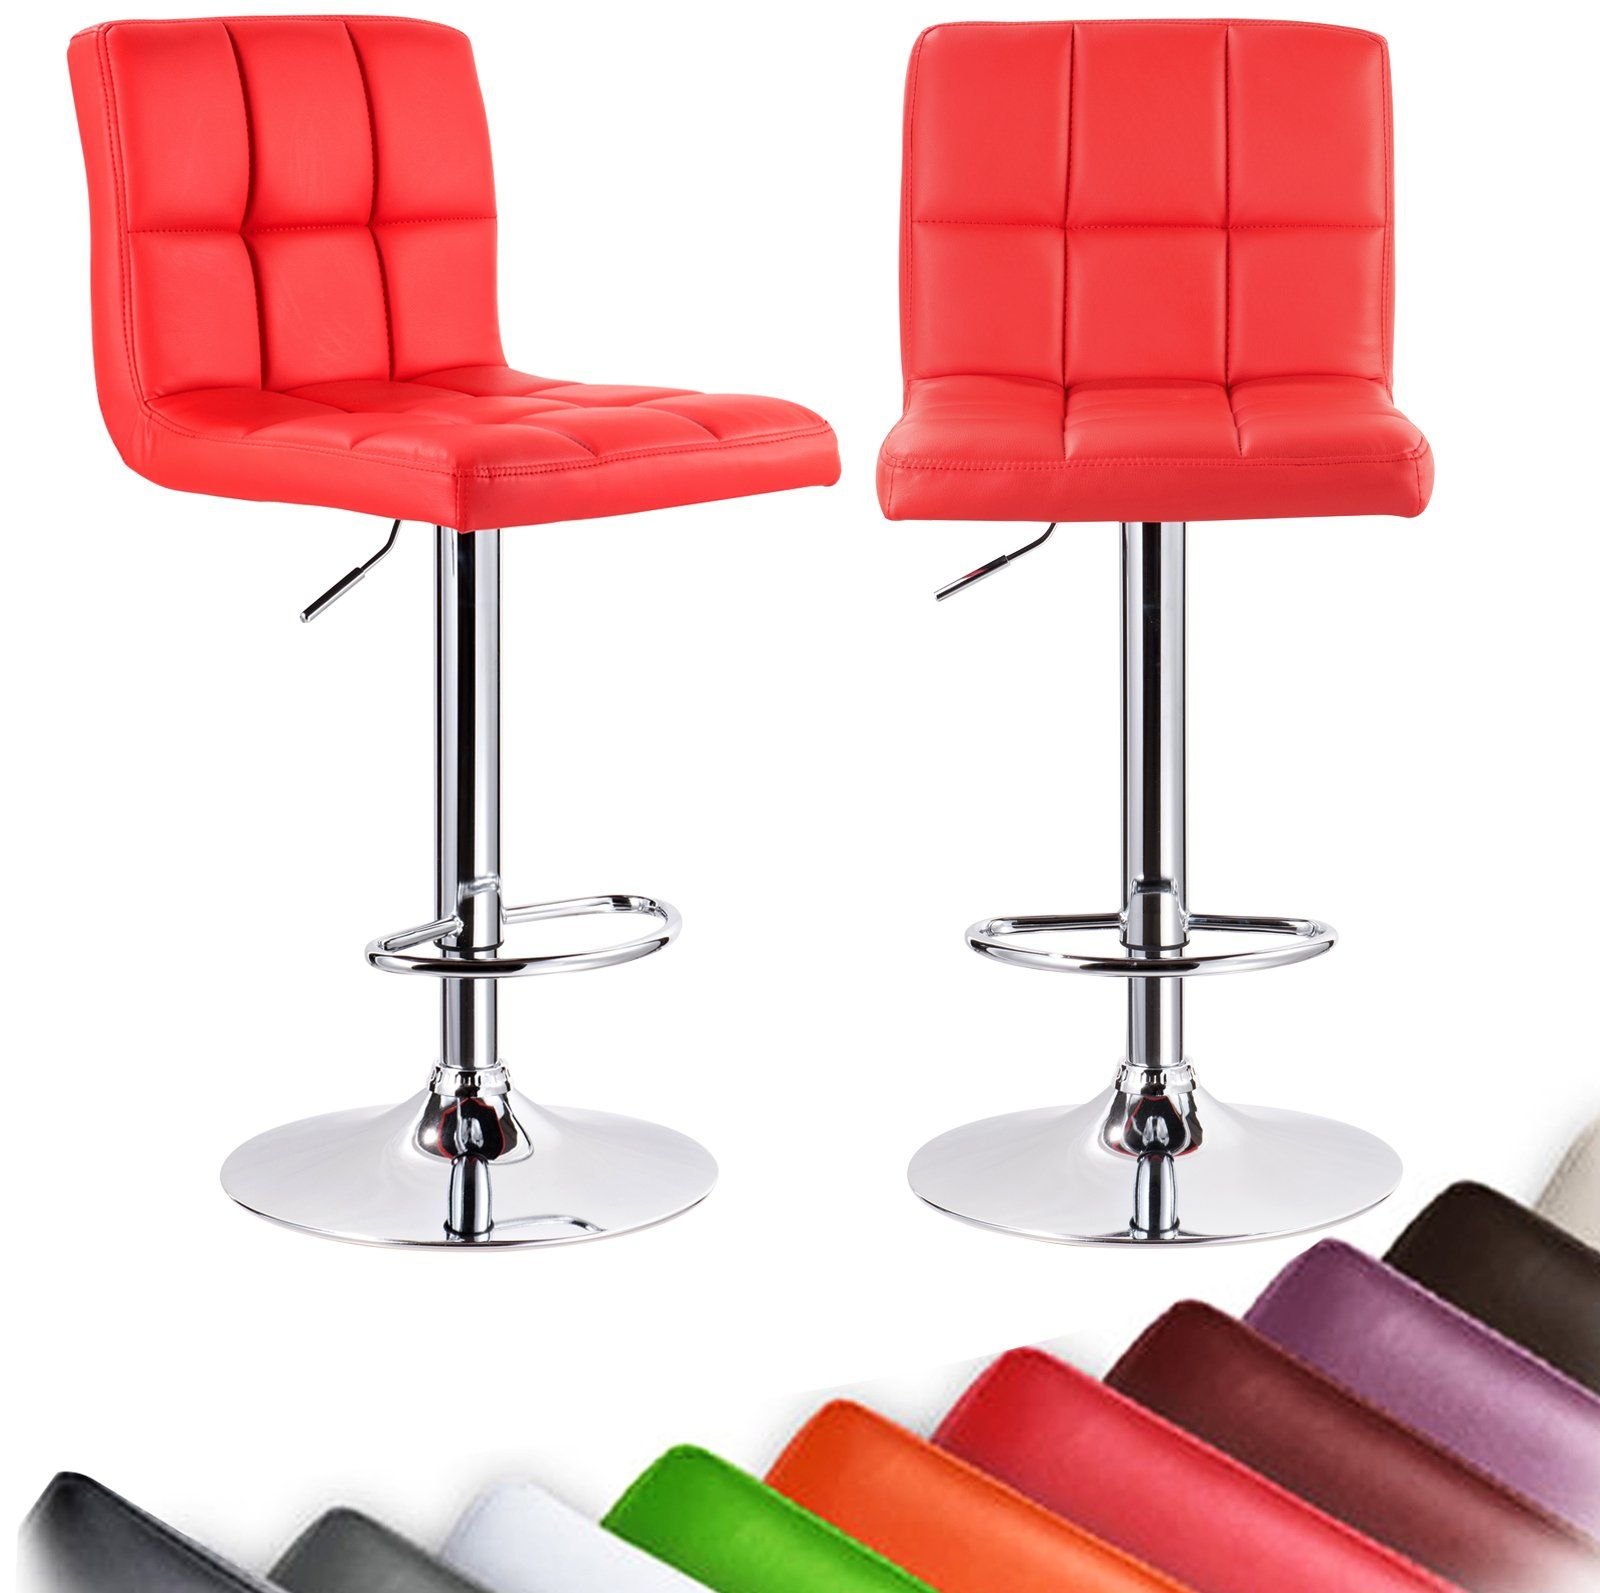 woltu absx1001reda furniture bar stool swivel red bonded